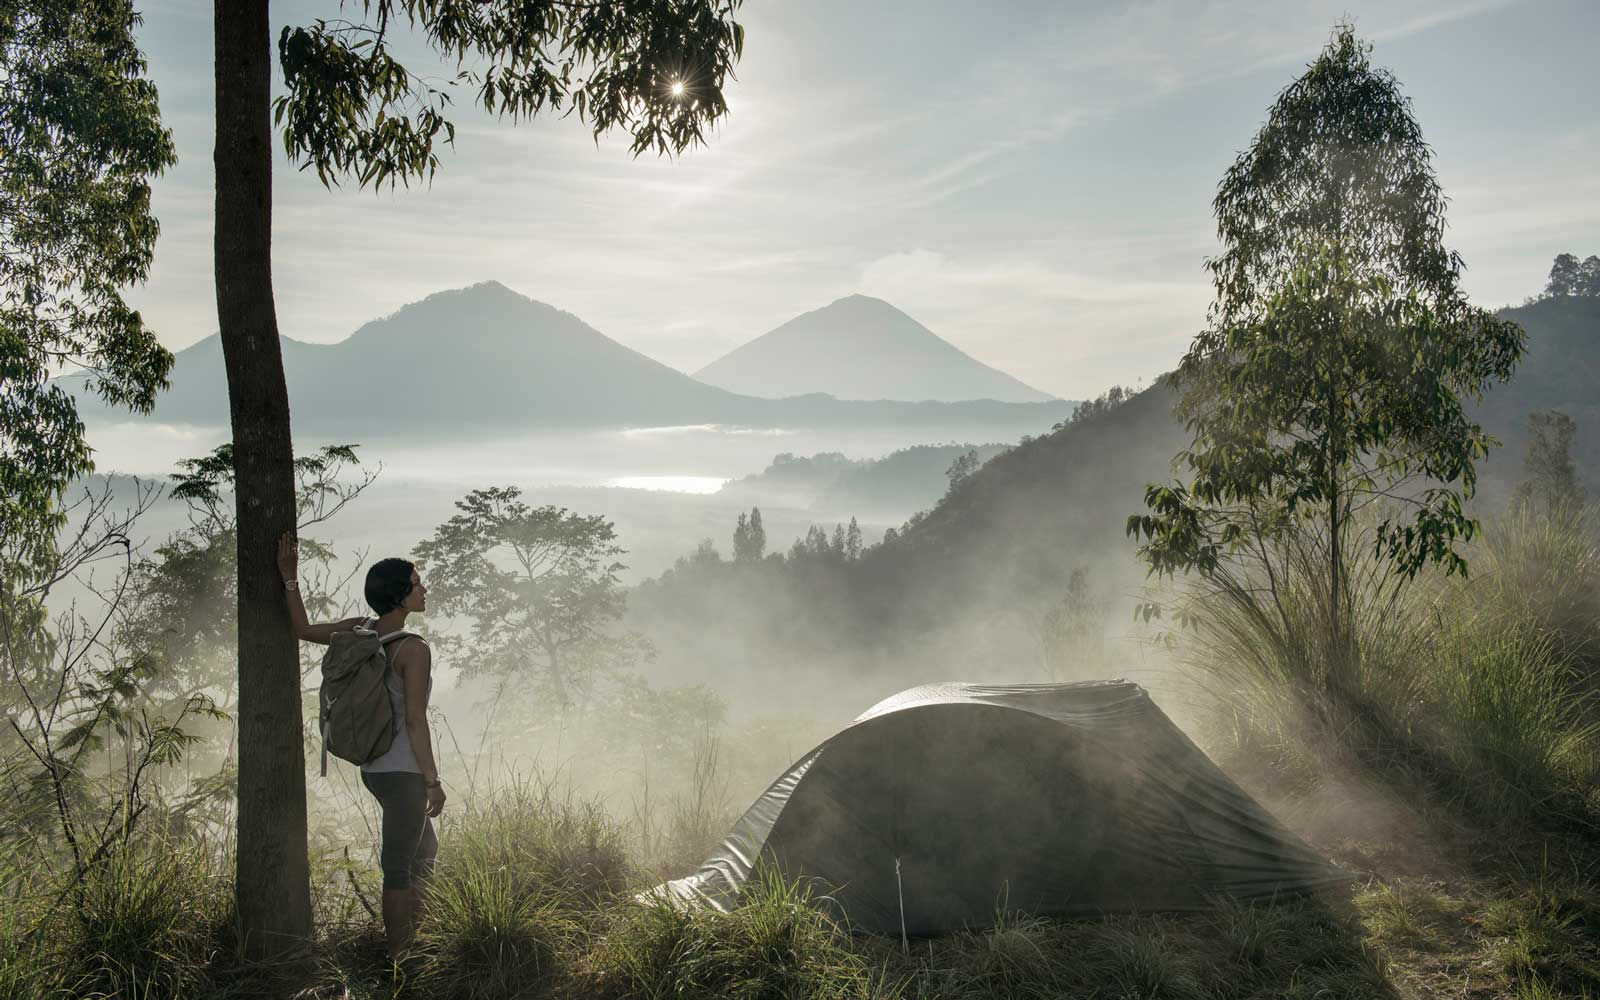 looking at the view while camping on Kintamani ridge, in front of Mount Agung volcano, at sunrise in Bali